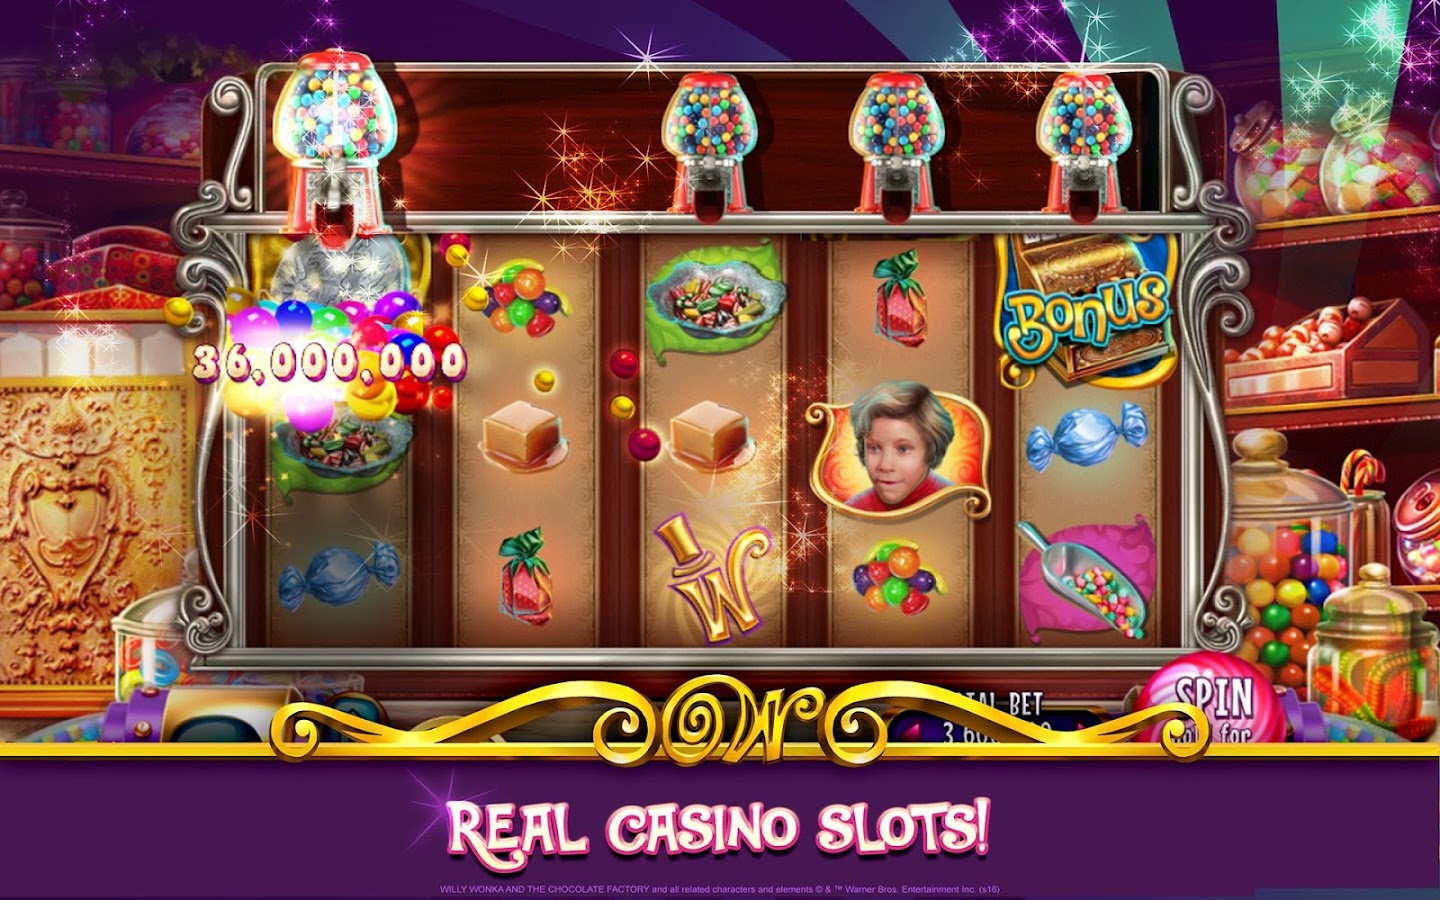 Willy wonka and the chocolate factory slots free coins